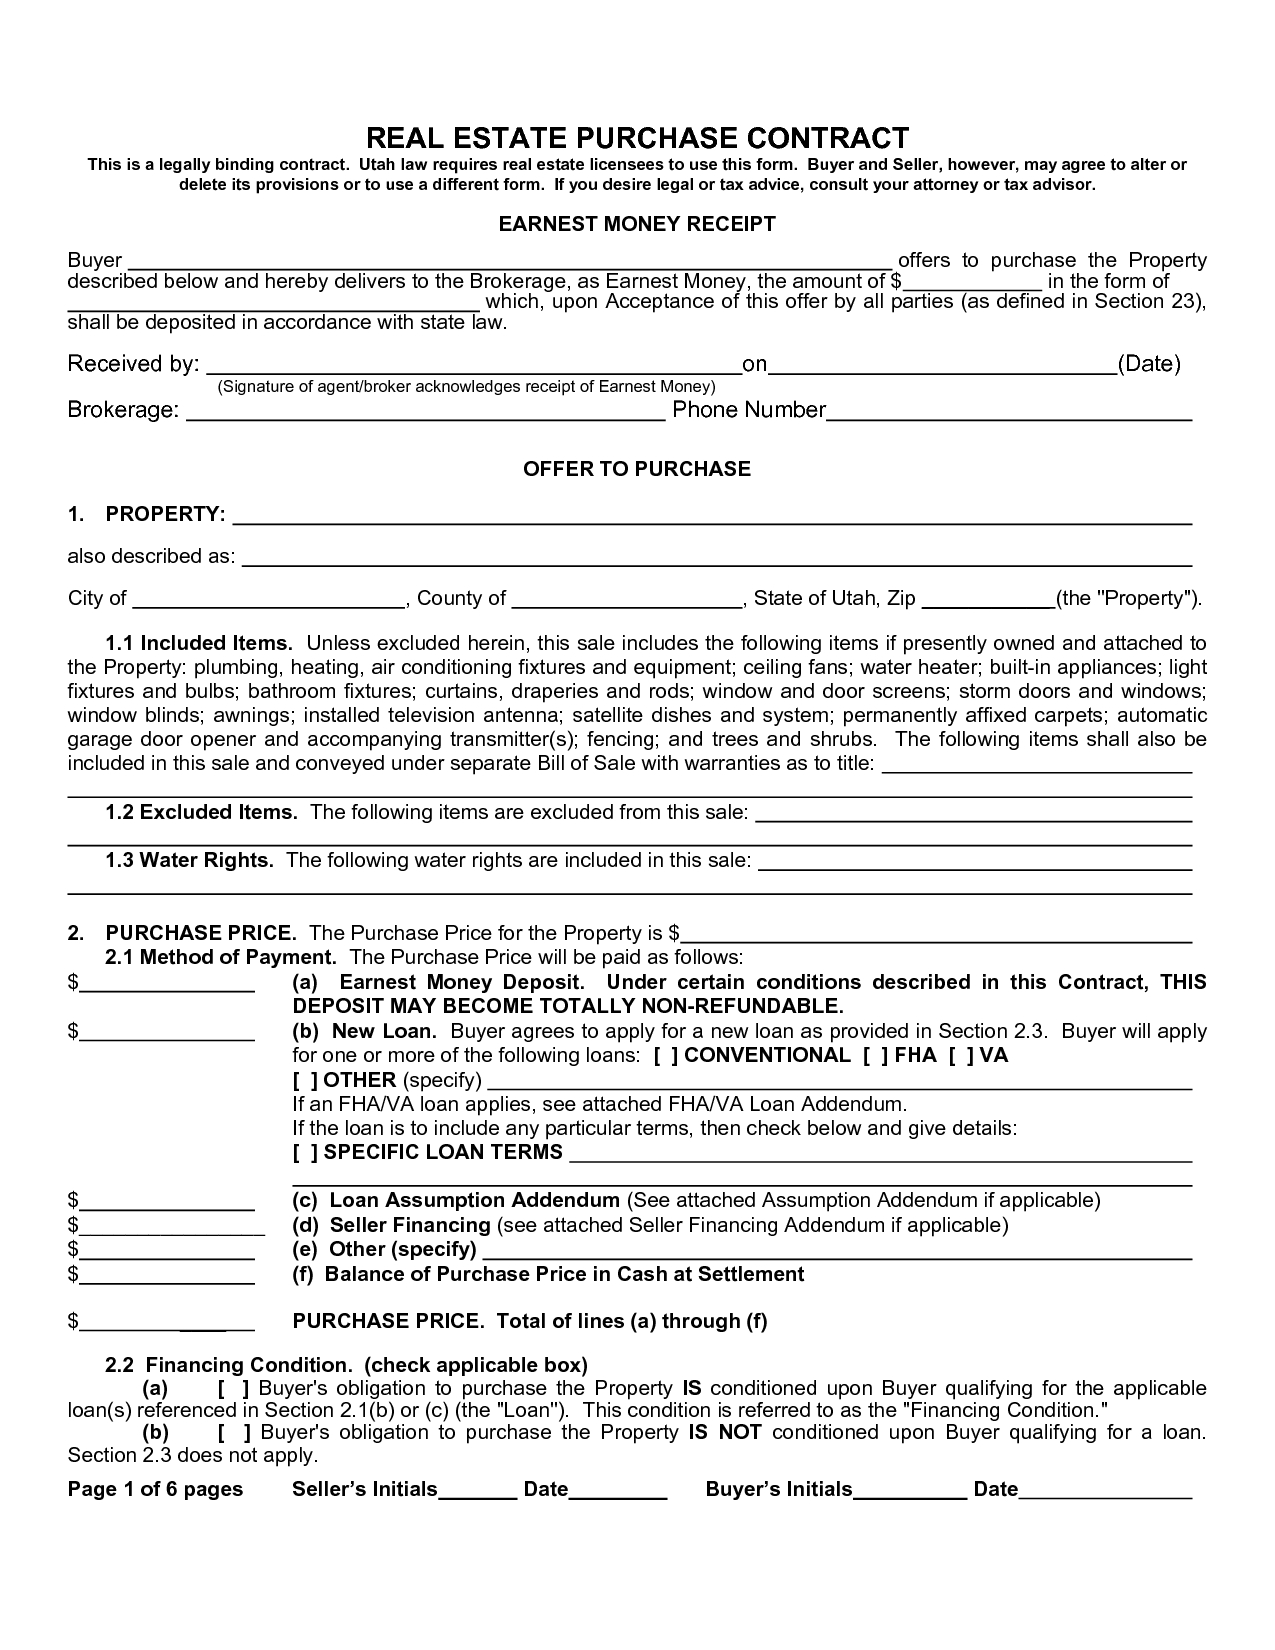 Real Estate Purchase Agreement Form Sample Image Gallery - Imggrid - Free Printable Real Estate Contracts